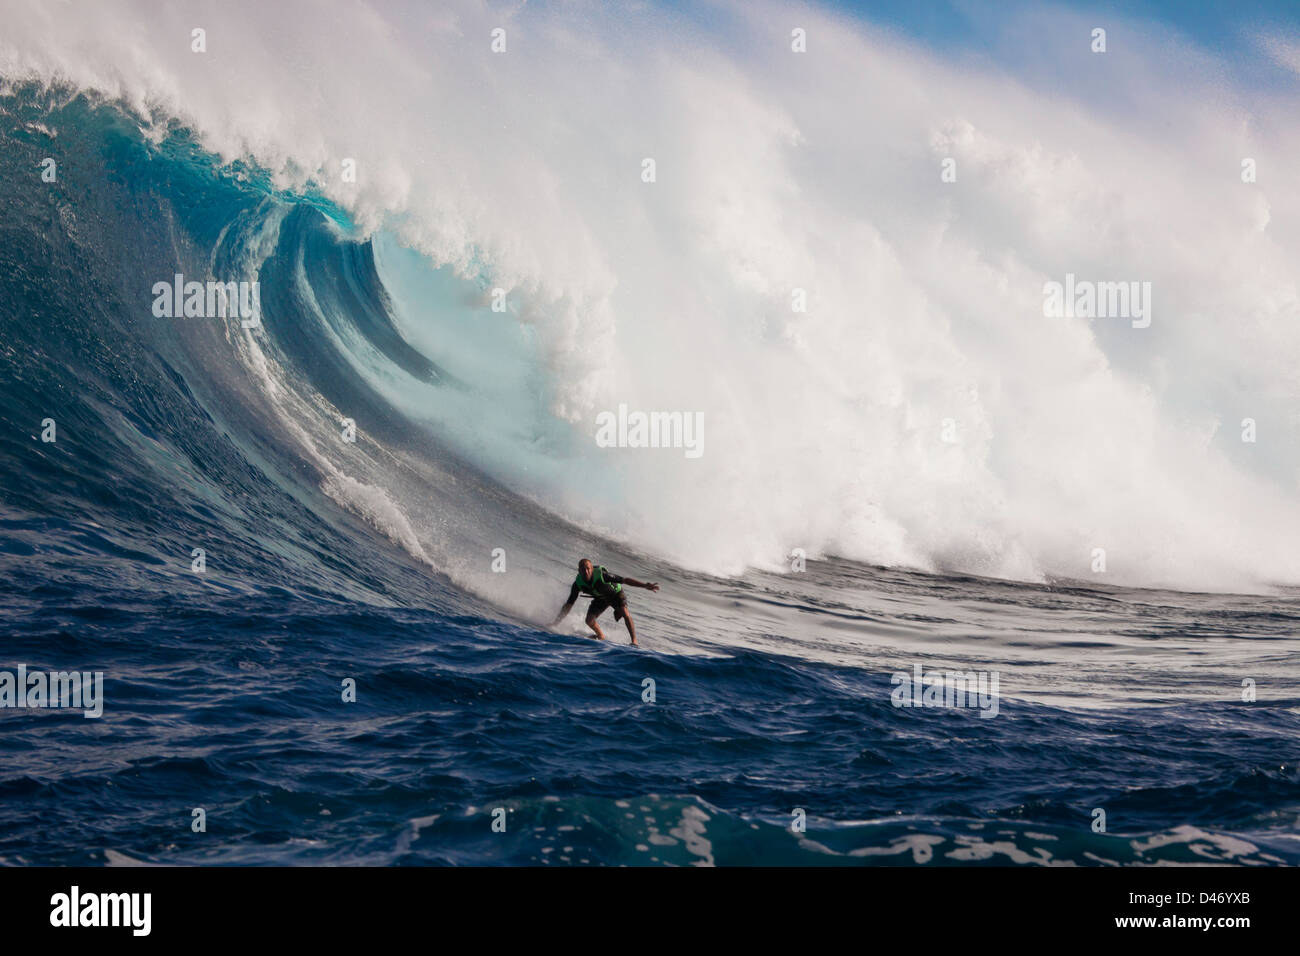 A tow-in surfer drops down the face of Hawaii's big surf at Peahi (Jaws) off Maui, Hawaii, USA. Stock Photo